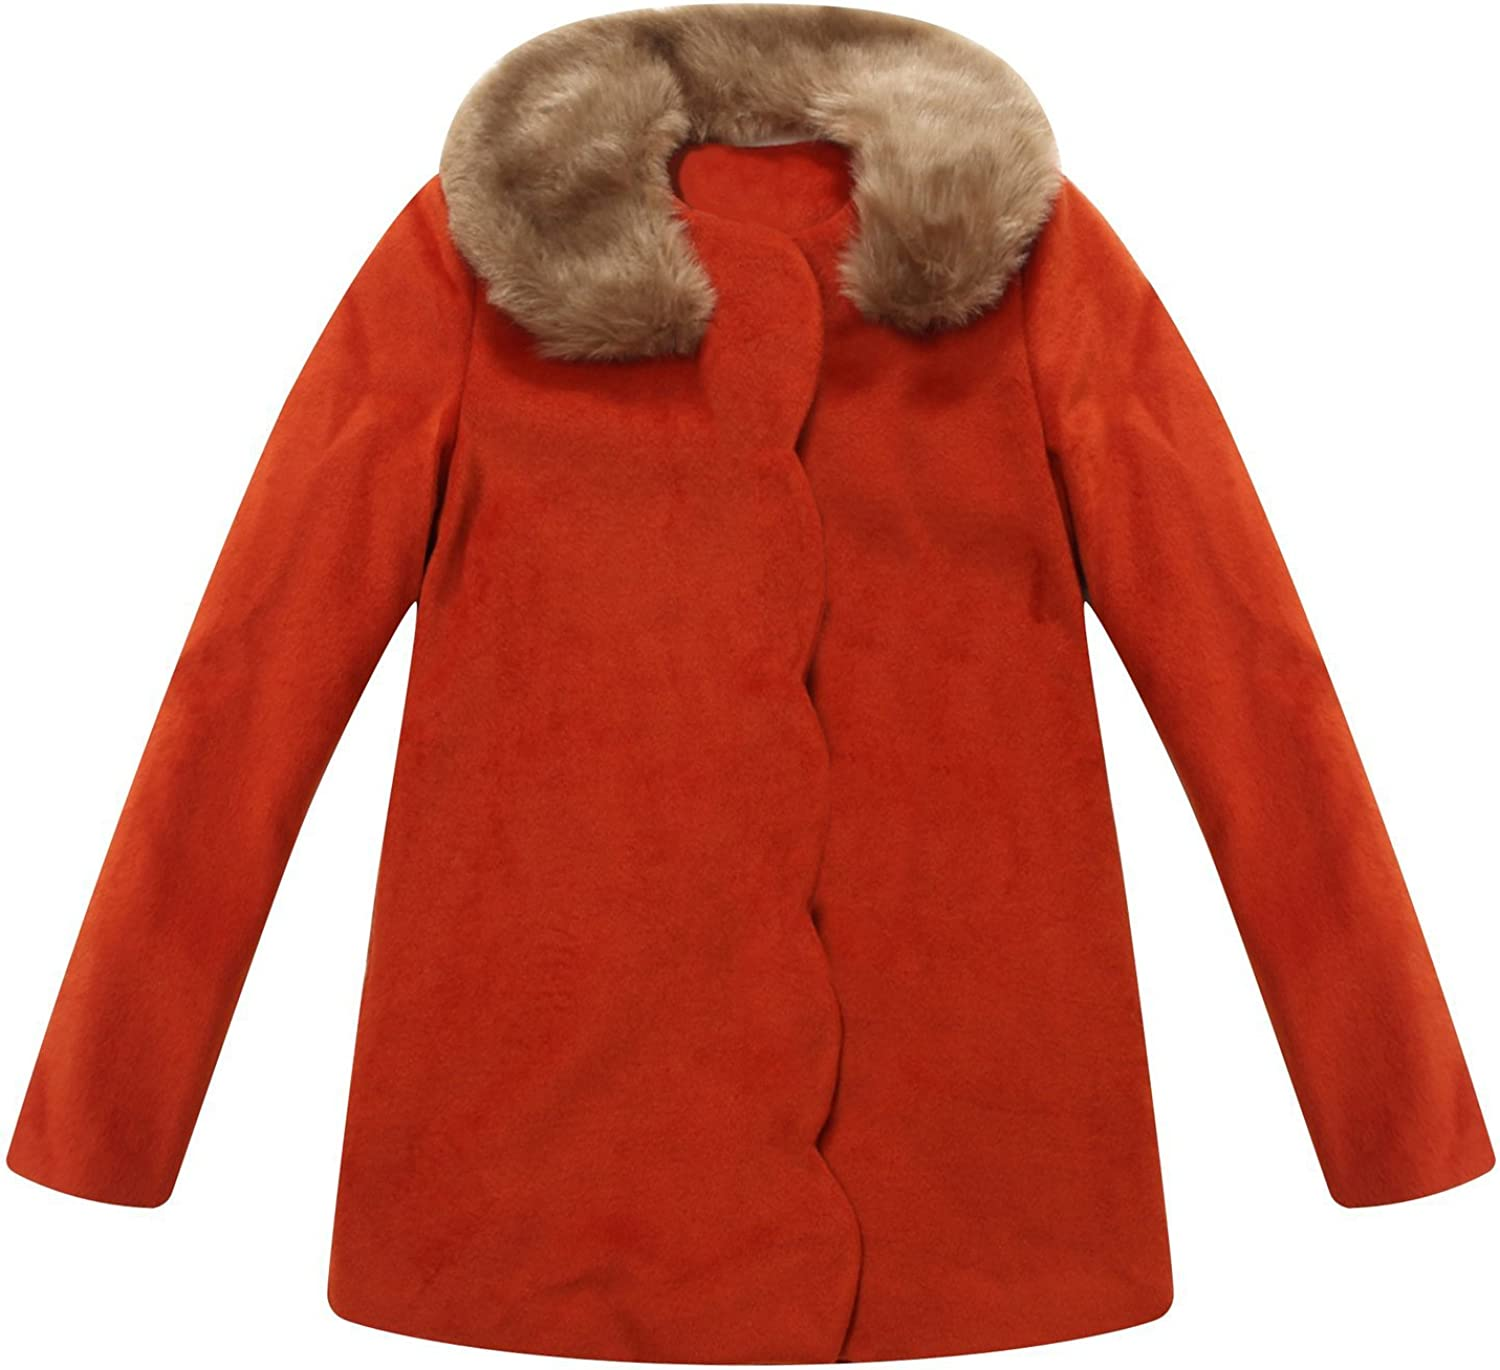 Richie House Little Girls' Overcoatoat with Fur Collar with Bow Rh1194